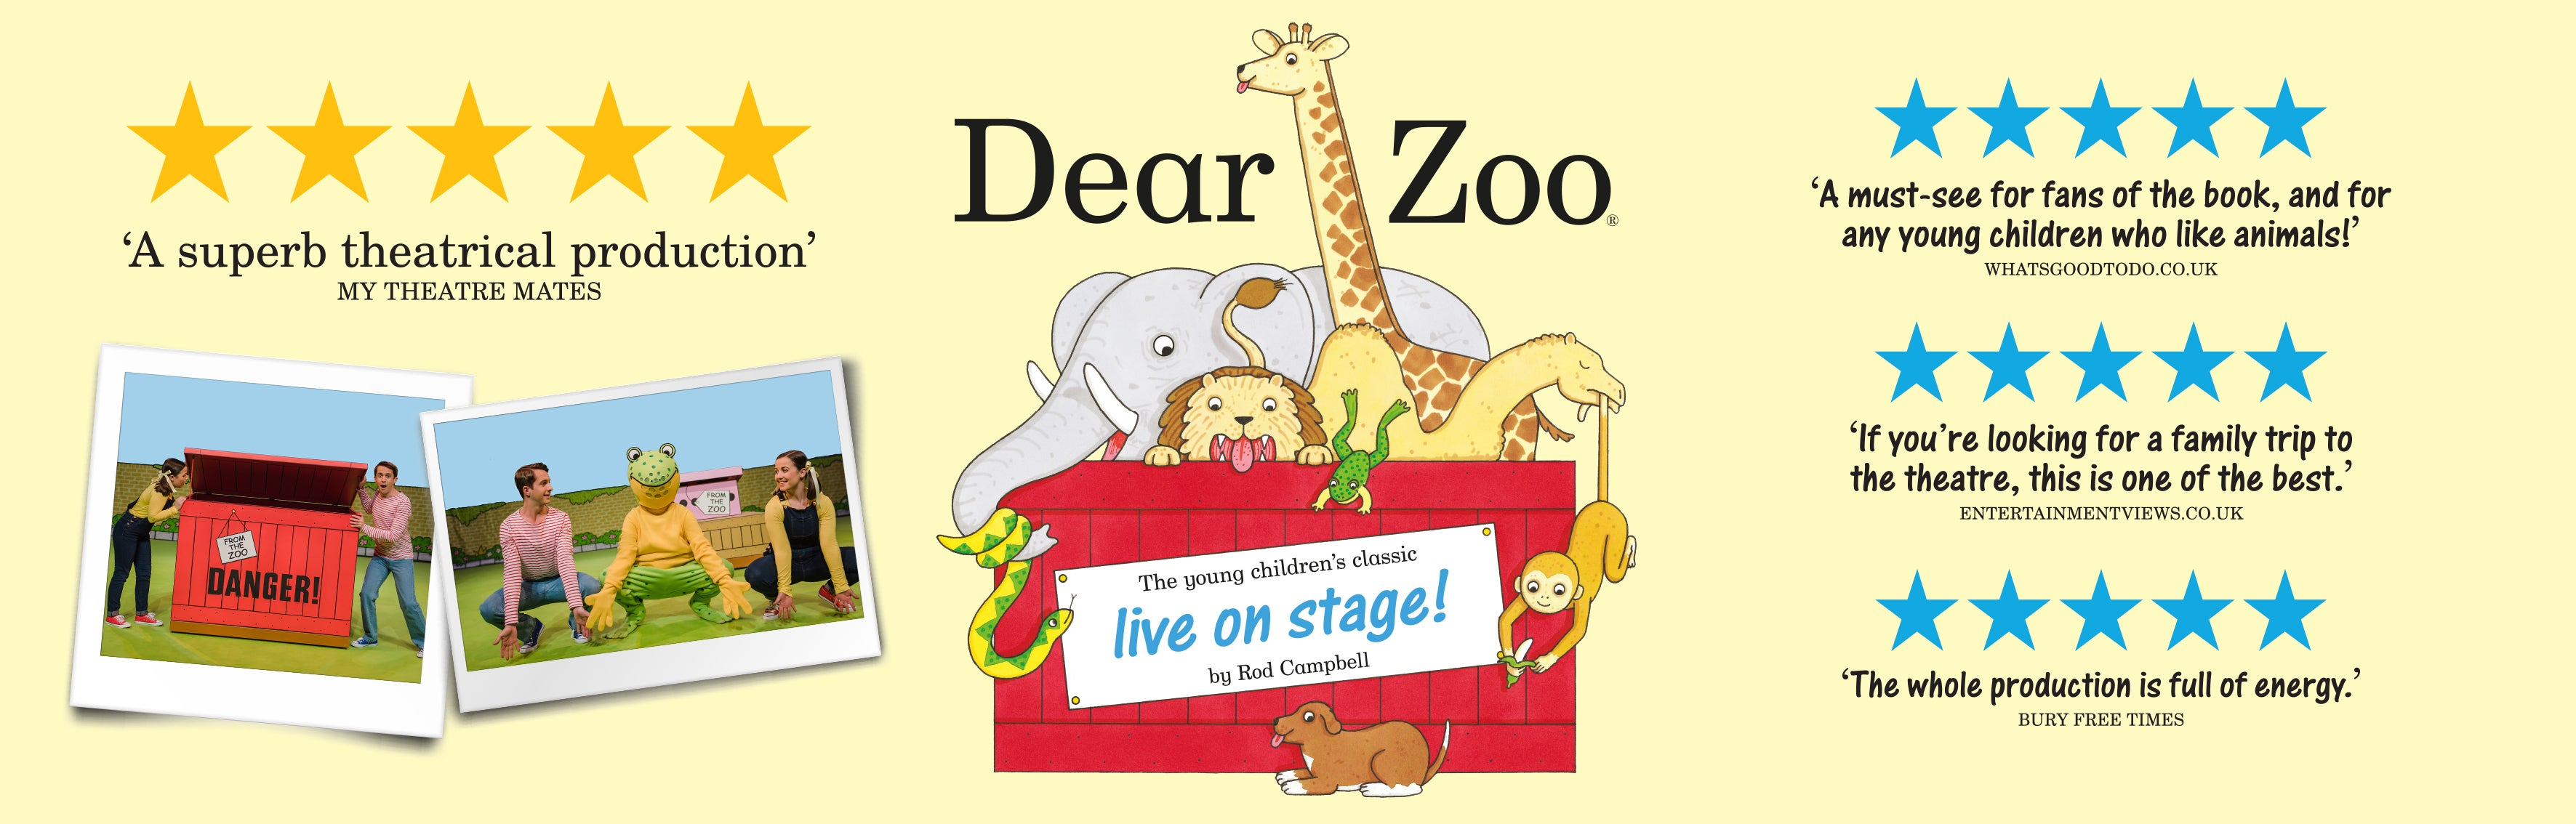 Dear Zoo Live on Stage Banner - 'A superb theatrical production' Quote by My Theatre Mates